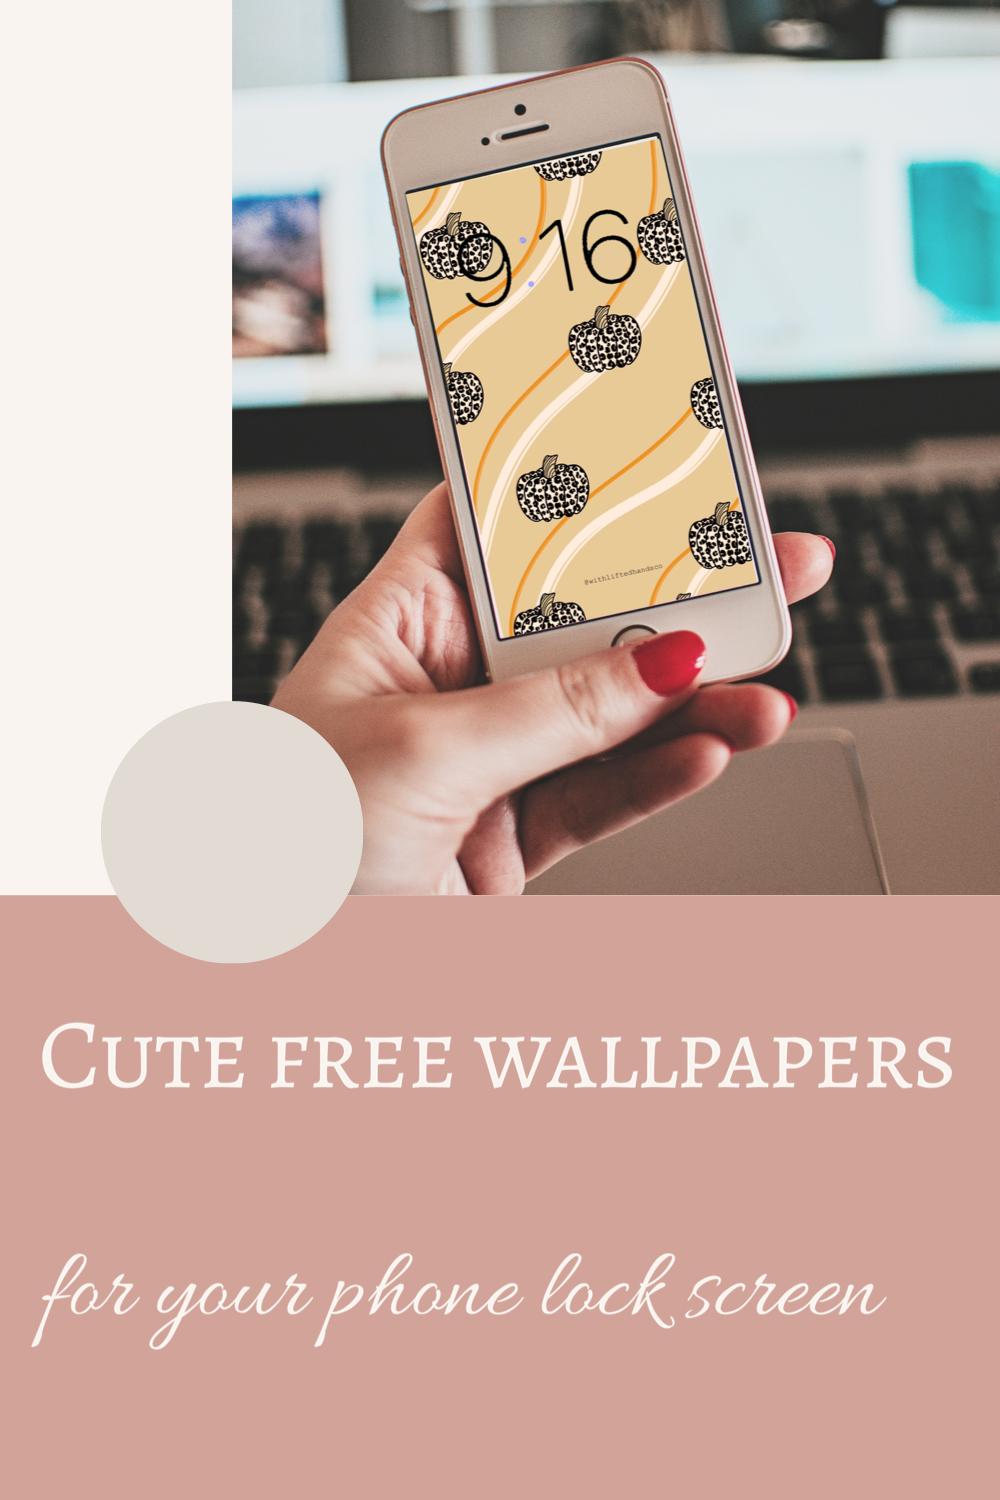 Cute phone wallpapers for your lock screen by with lifted hands co